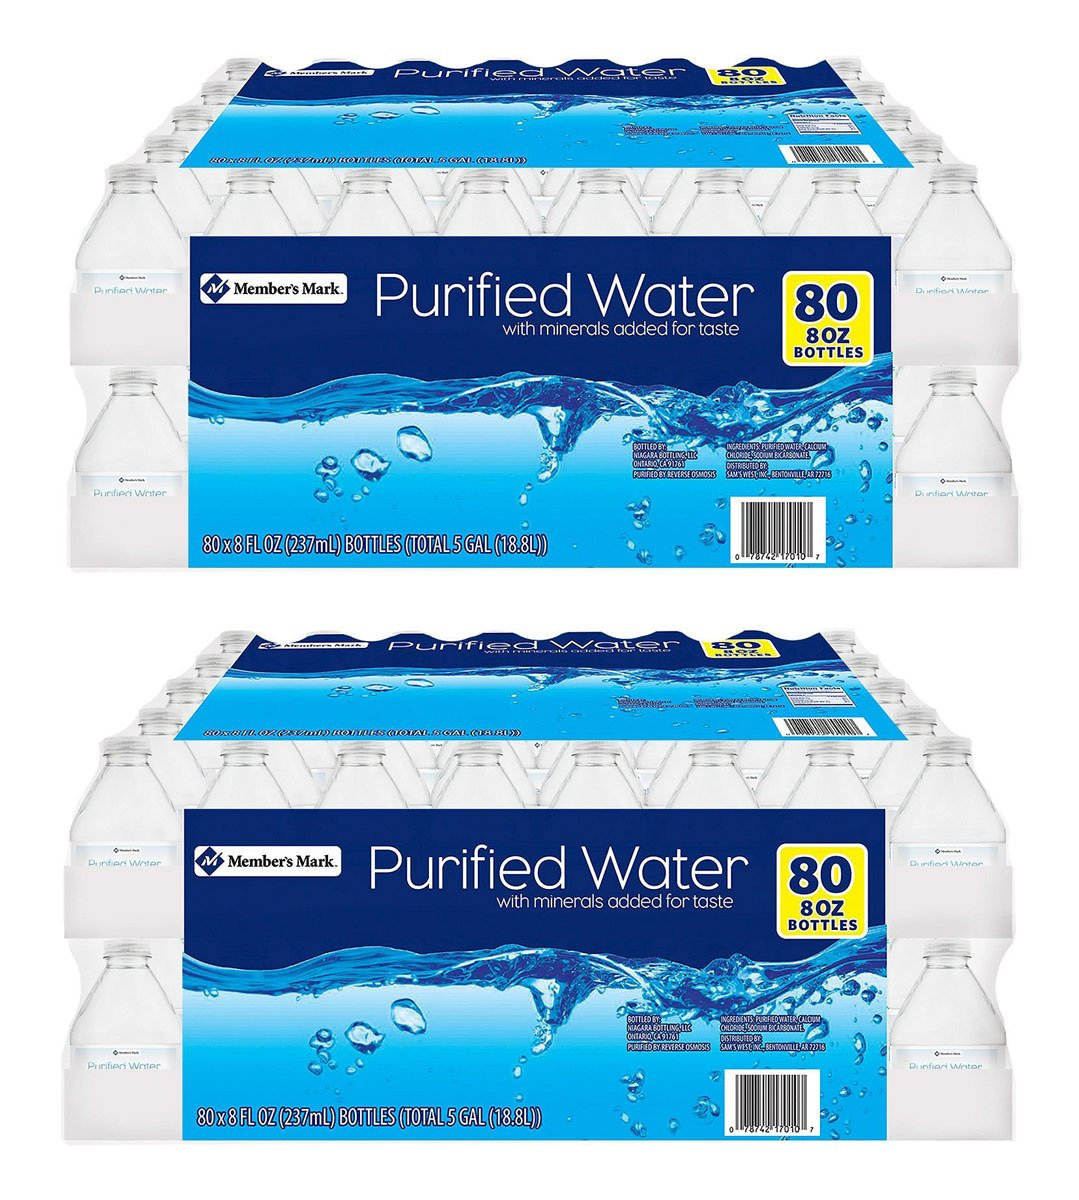 Member's Mark ZVUG Purified Water, 2 Cases of 80 Count